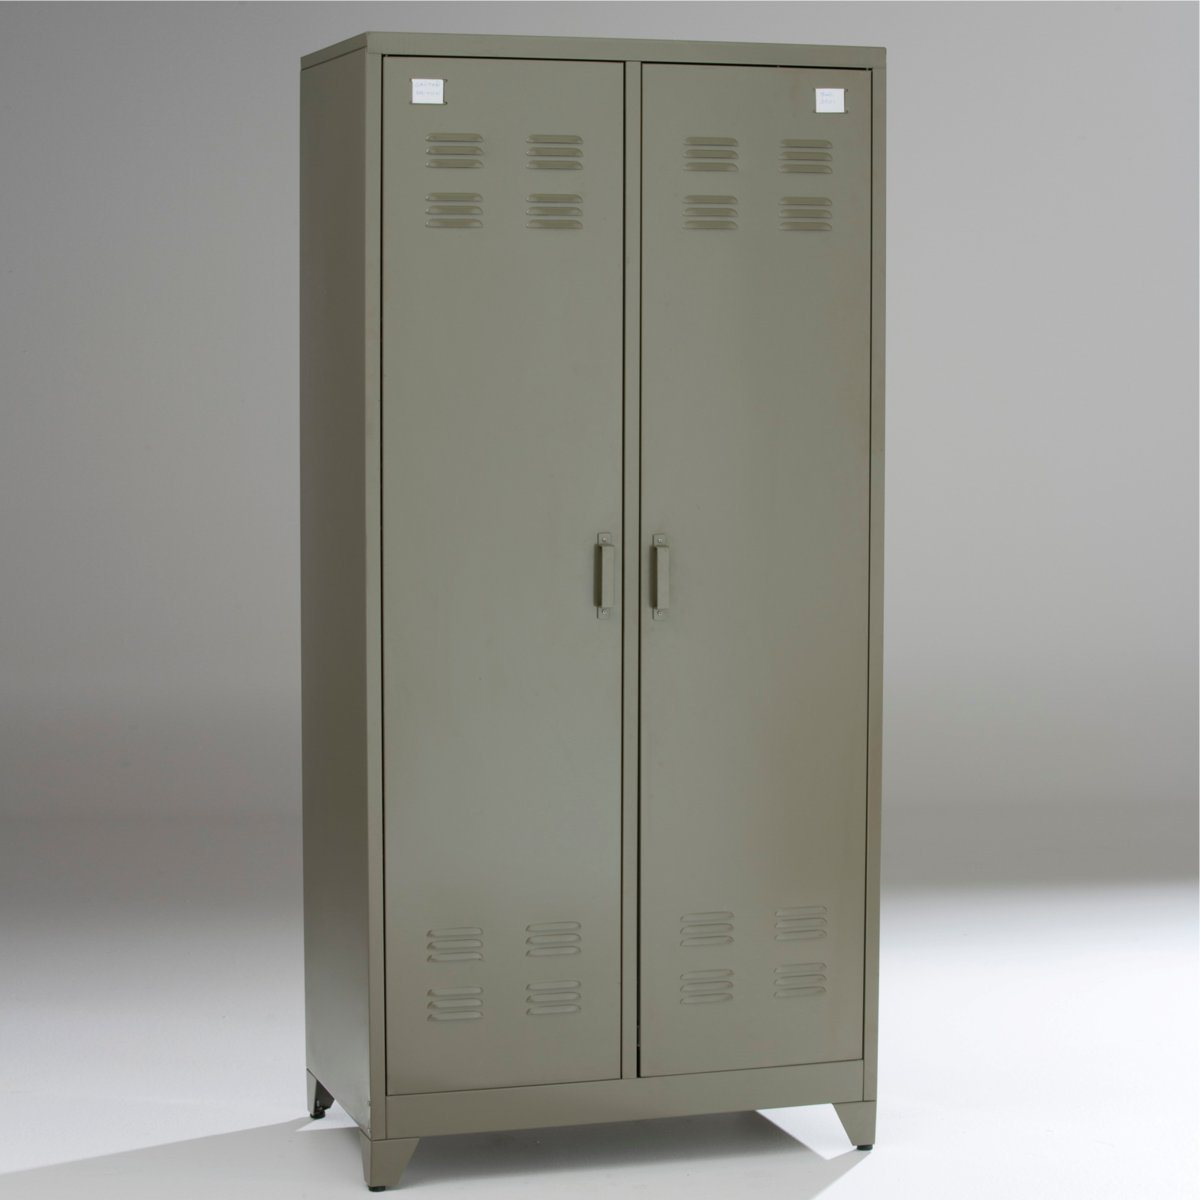 armoire industrielle m tallique ss12 jornalagora. Black Bedroom Furniture Sets. Home Design Ideas